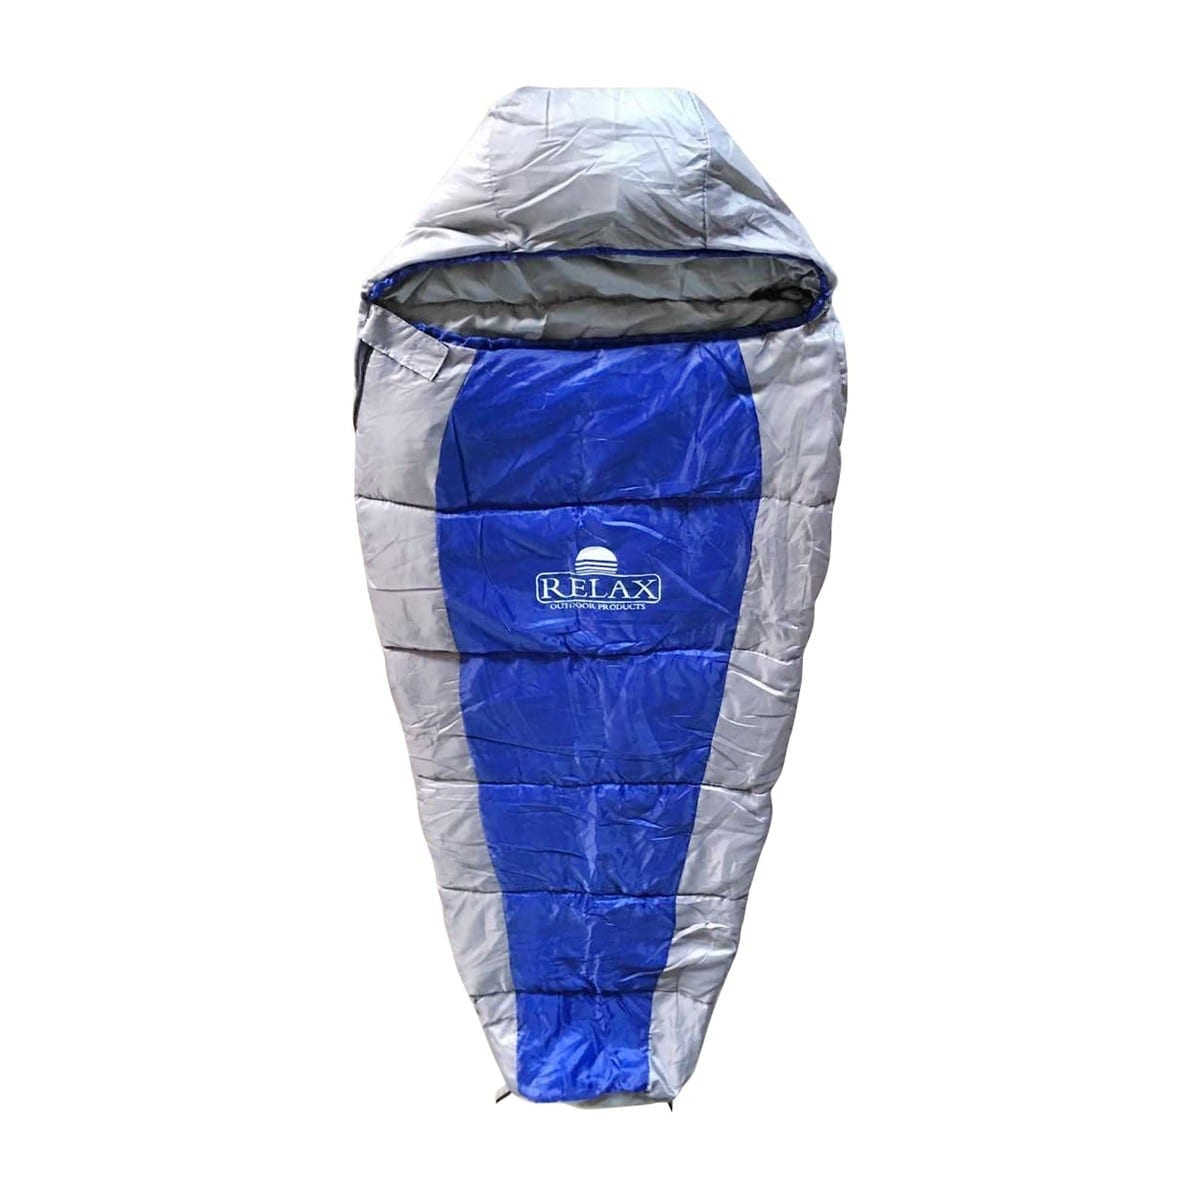 Relax Child Sleeping Bag